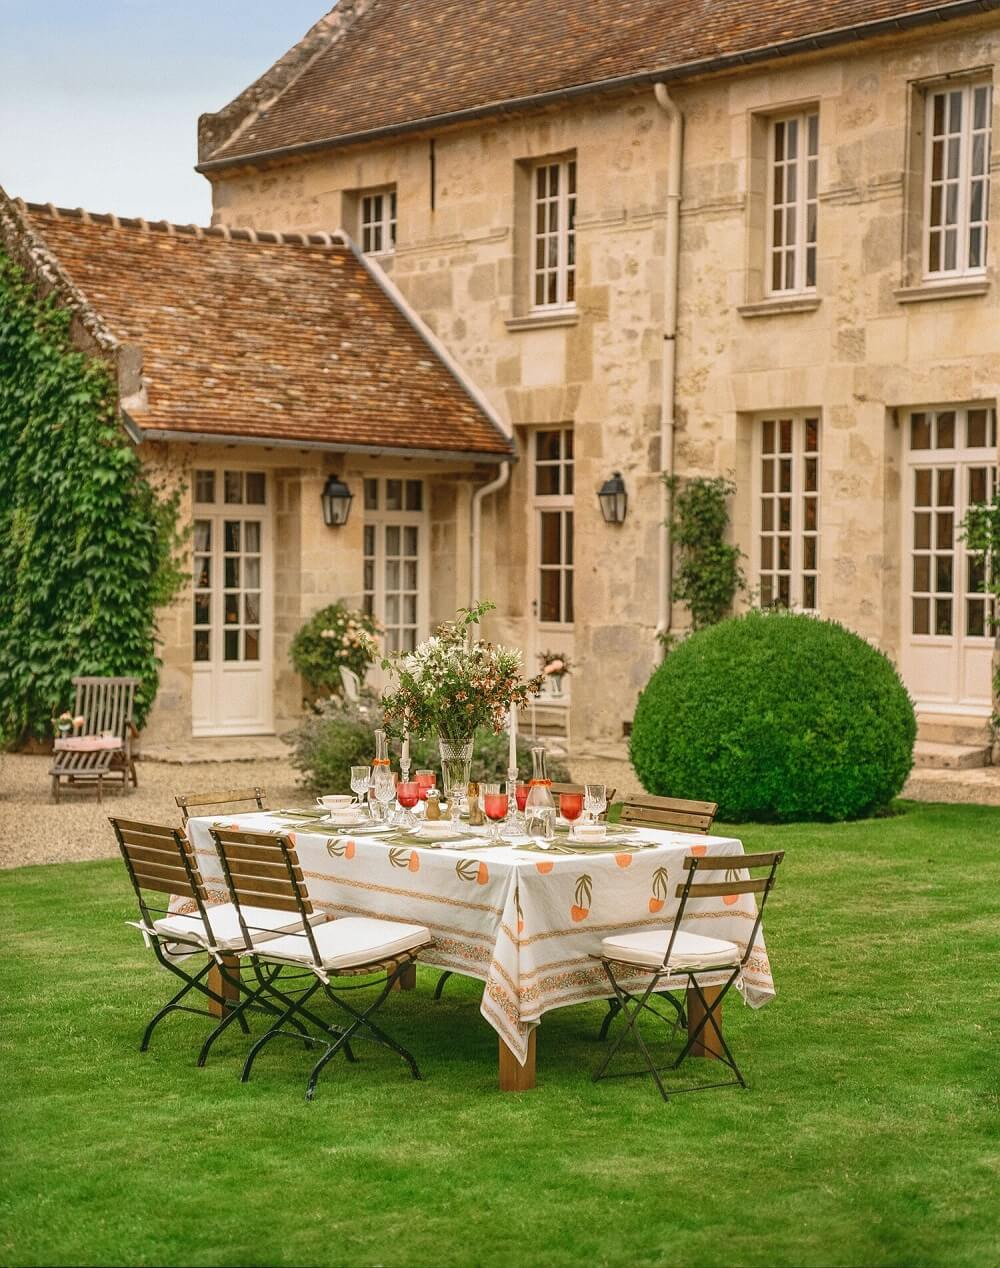 The Eclectic French Country Home of Cordelia de Castellane